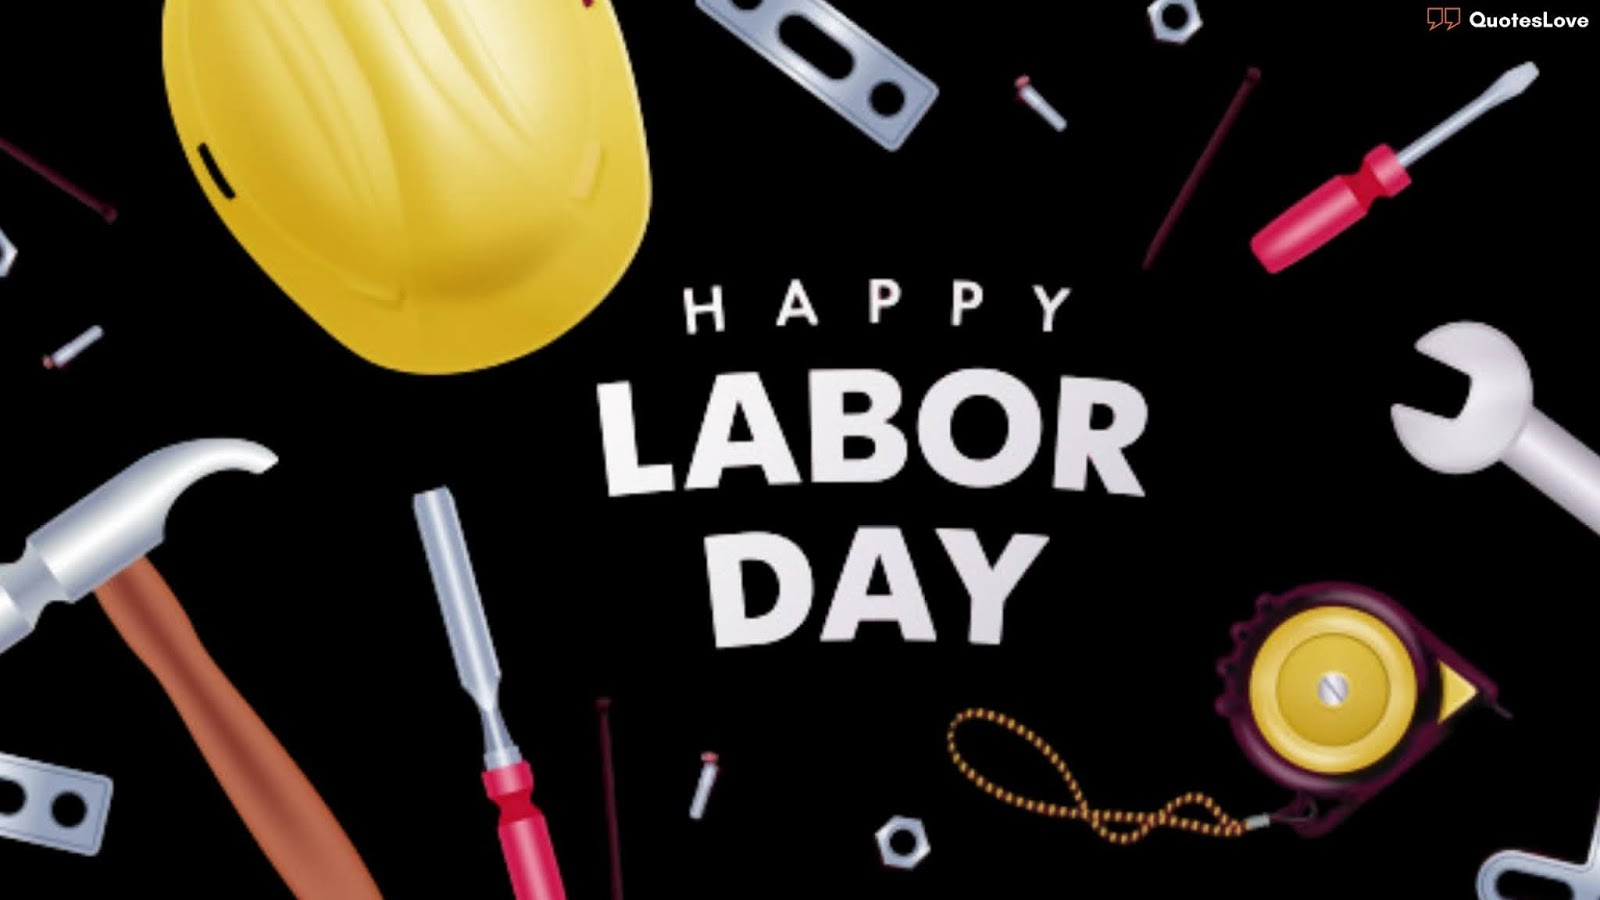 Labor Day Wishes, Greetings, Messages, Images, Pictures, Poster, Pictures